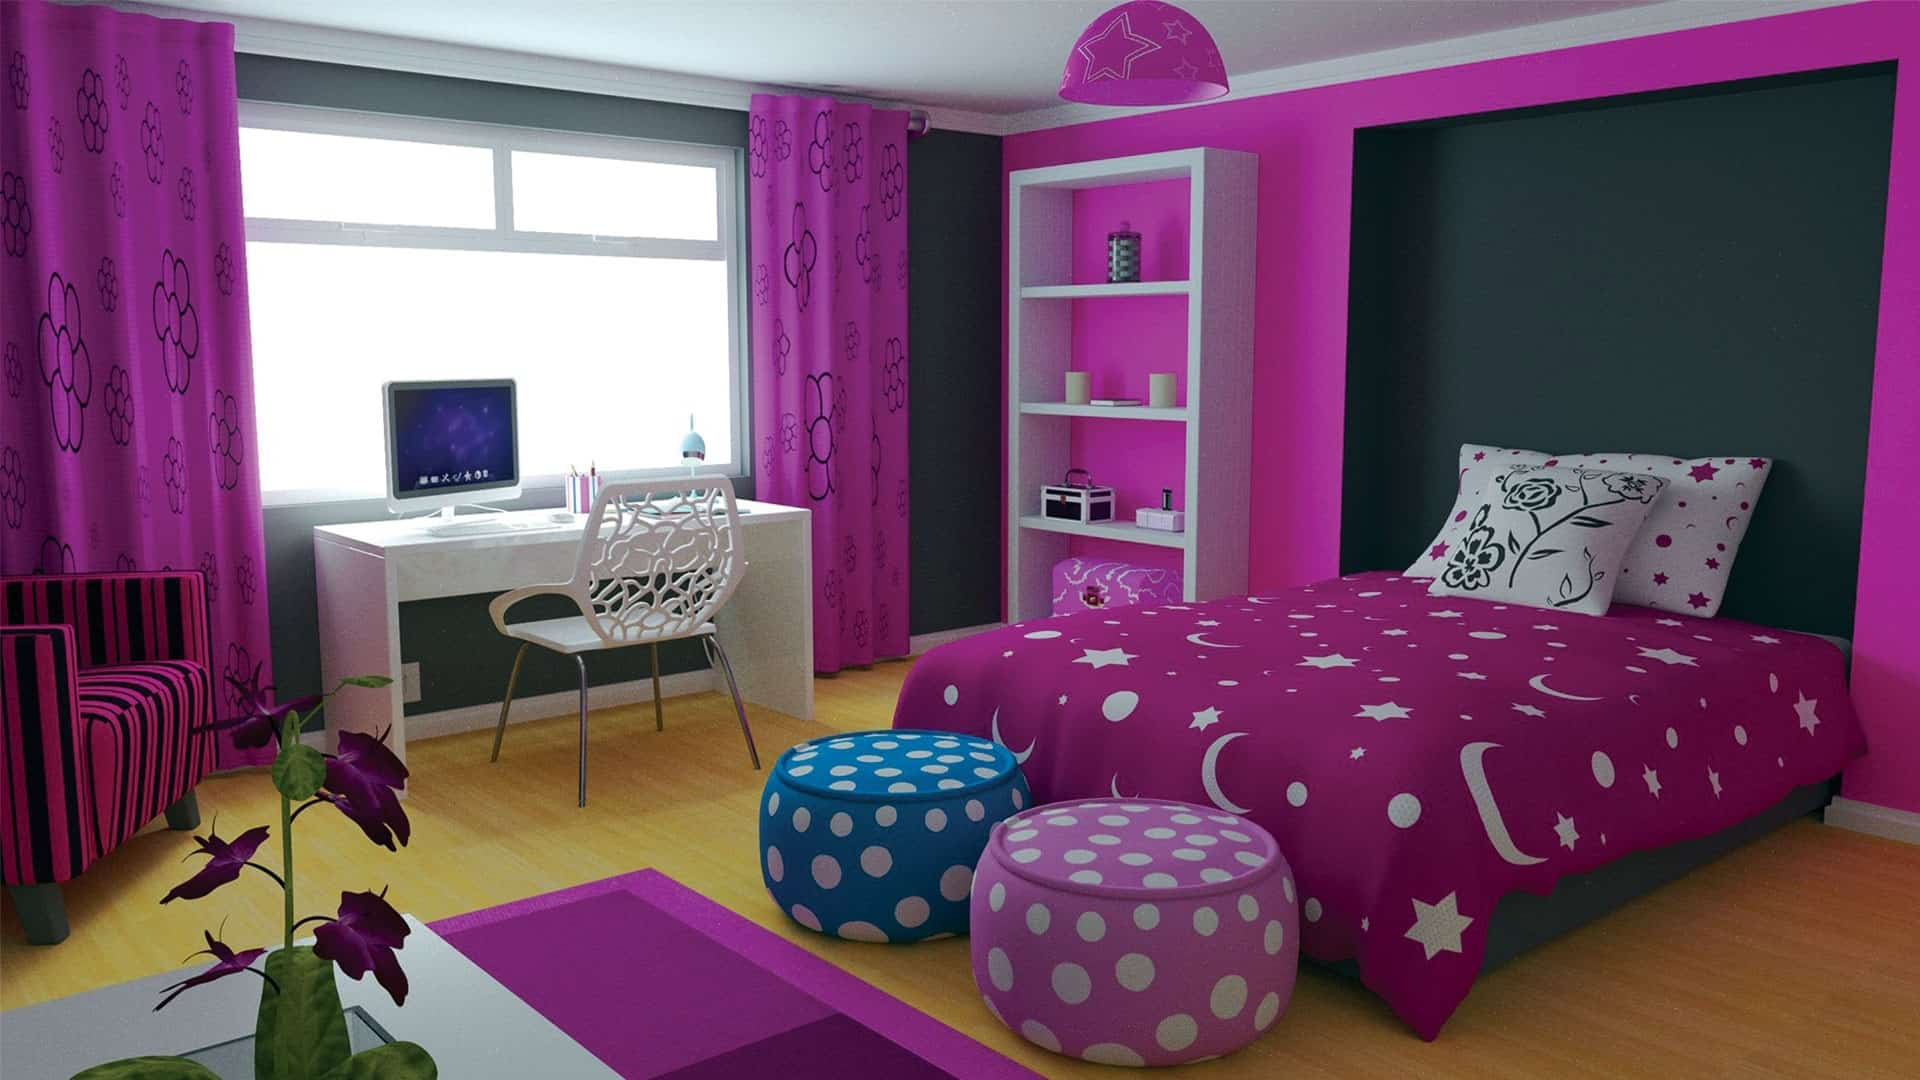 Home decor trends 2017 purple teen room for Bedroom room decor ideas